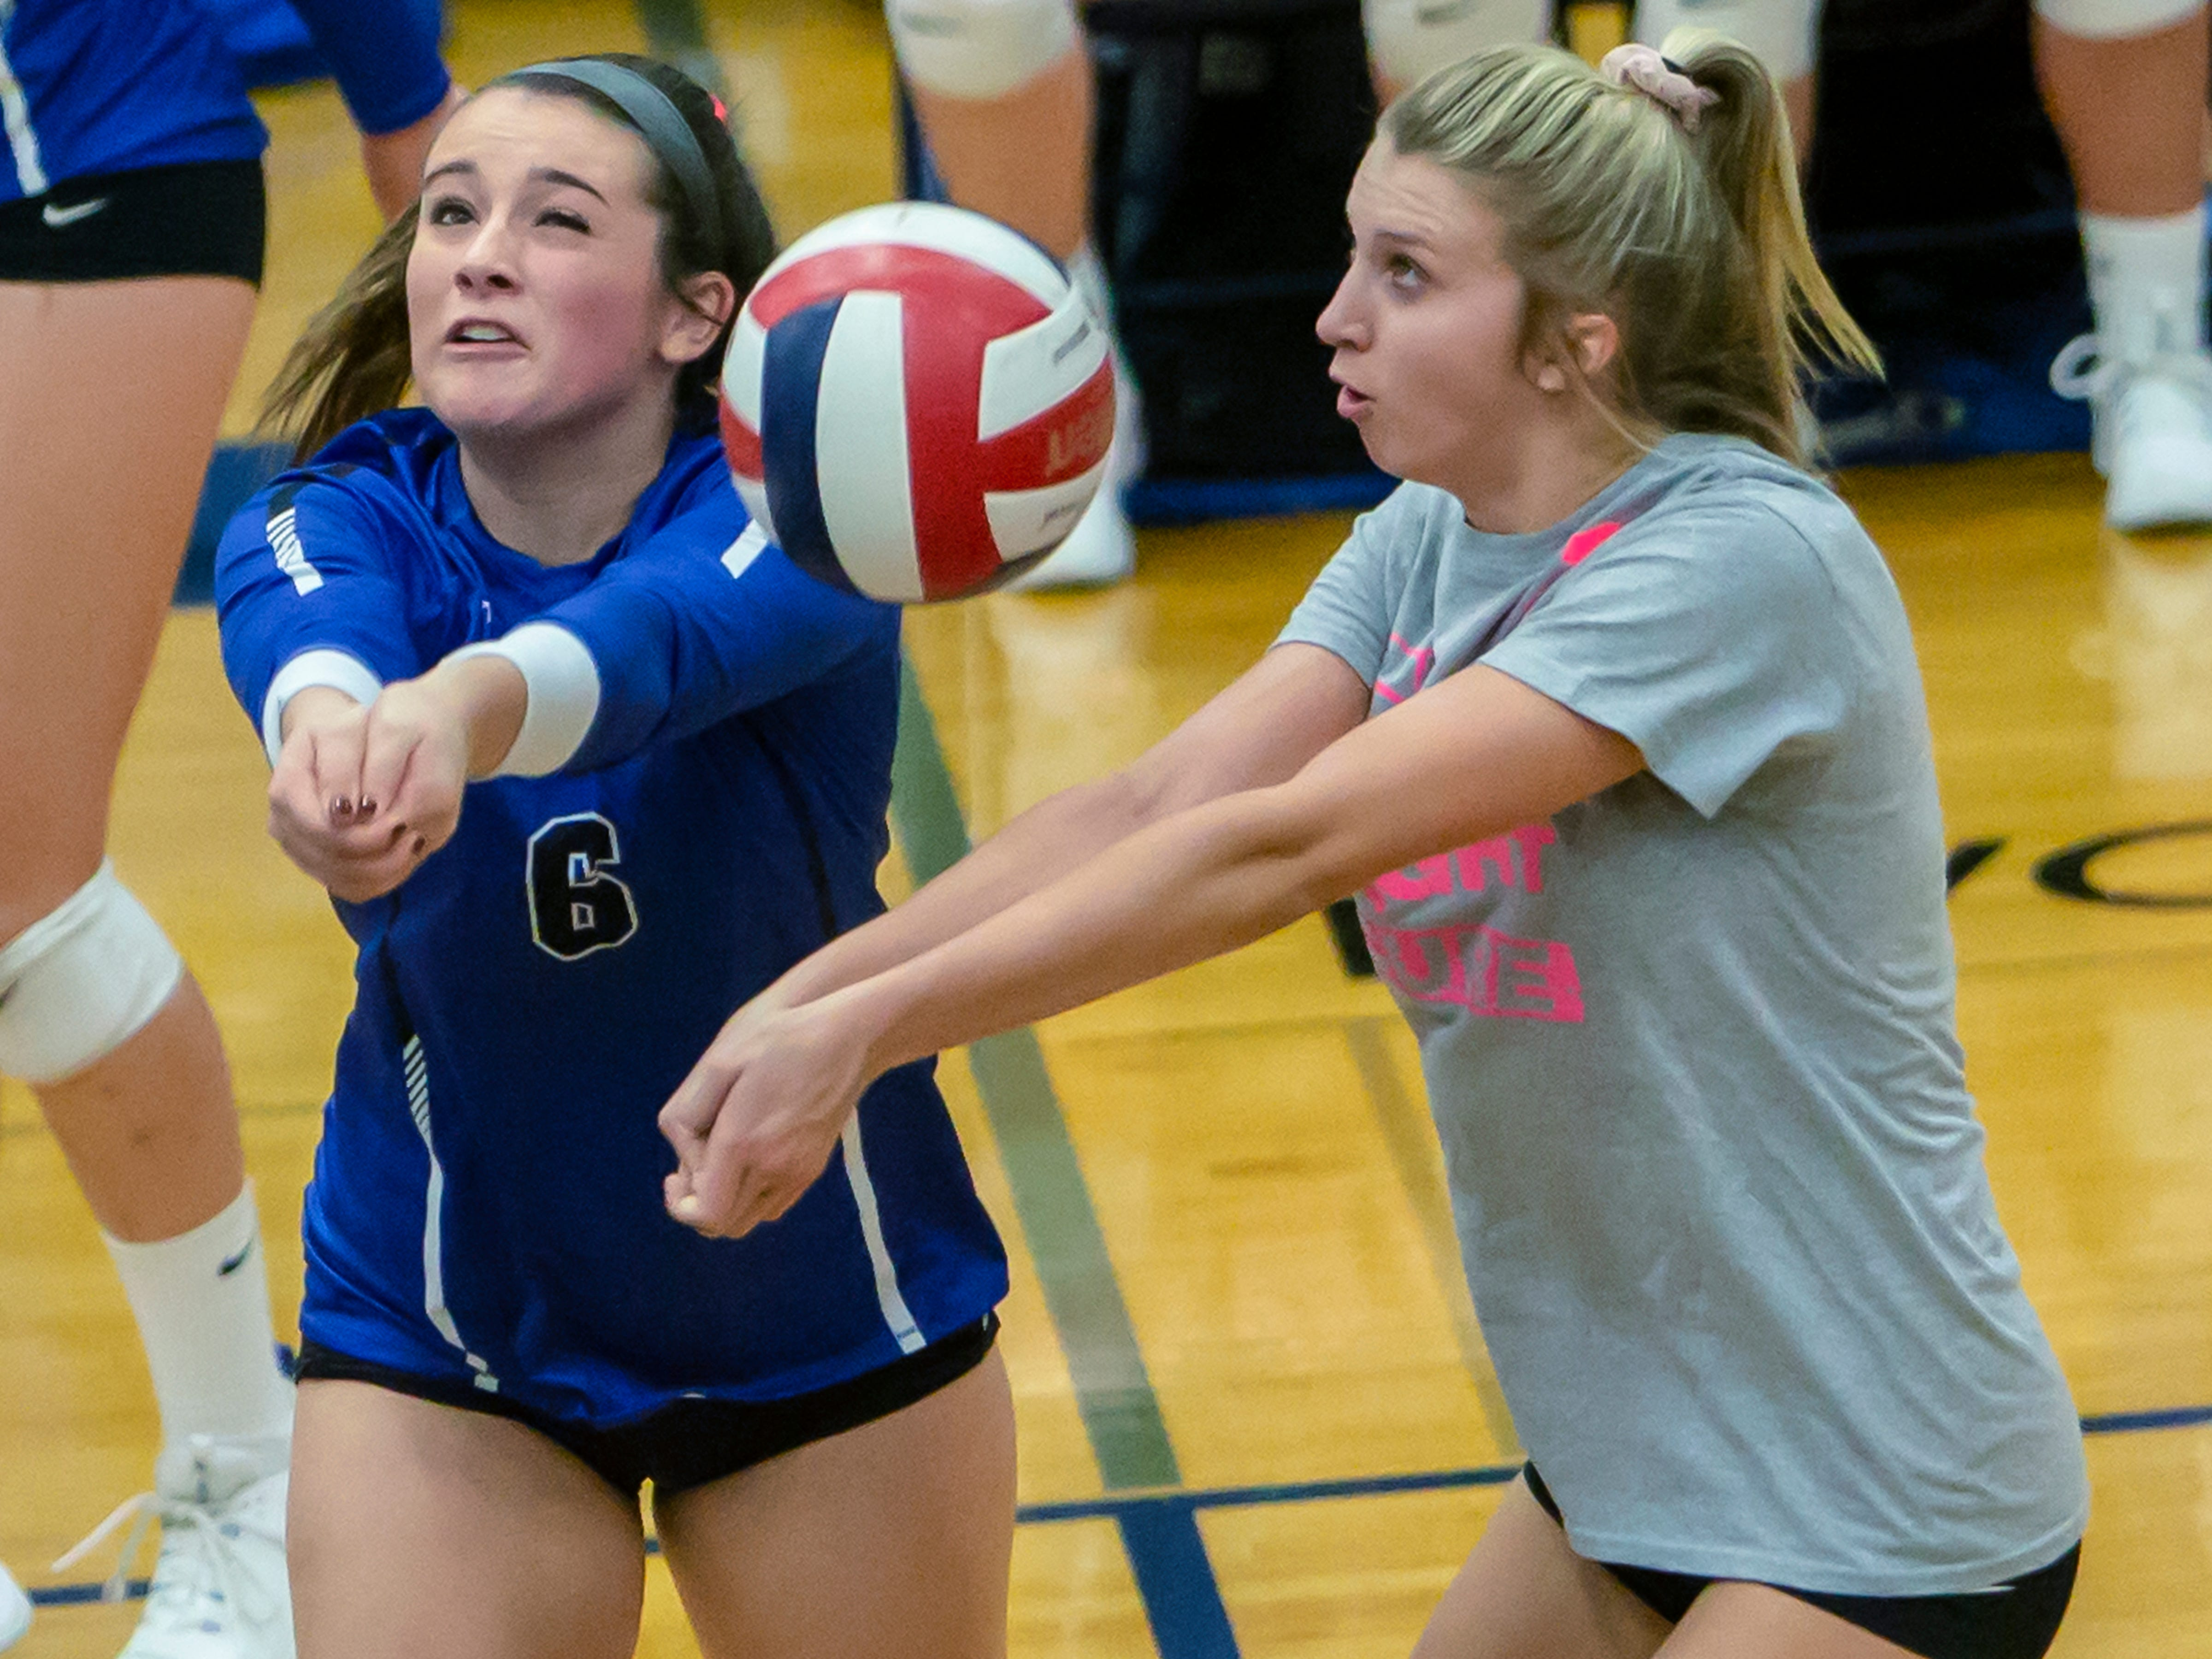 Oshkosh West's Callista Rochon-Baker bumps up the ball with  Madigan Carlson as backup playing at Oshkosh West High School on Thursday, October 11, 2018.